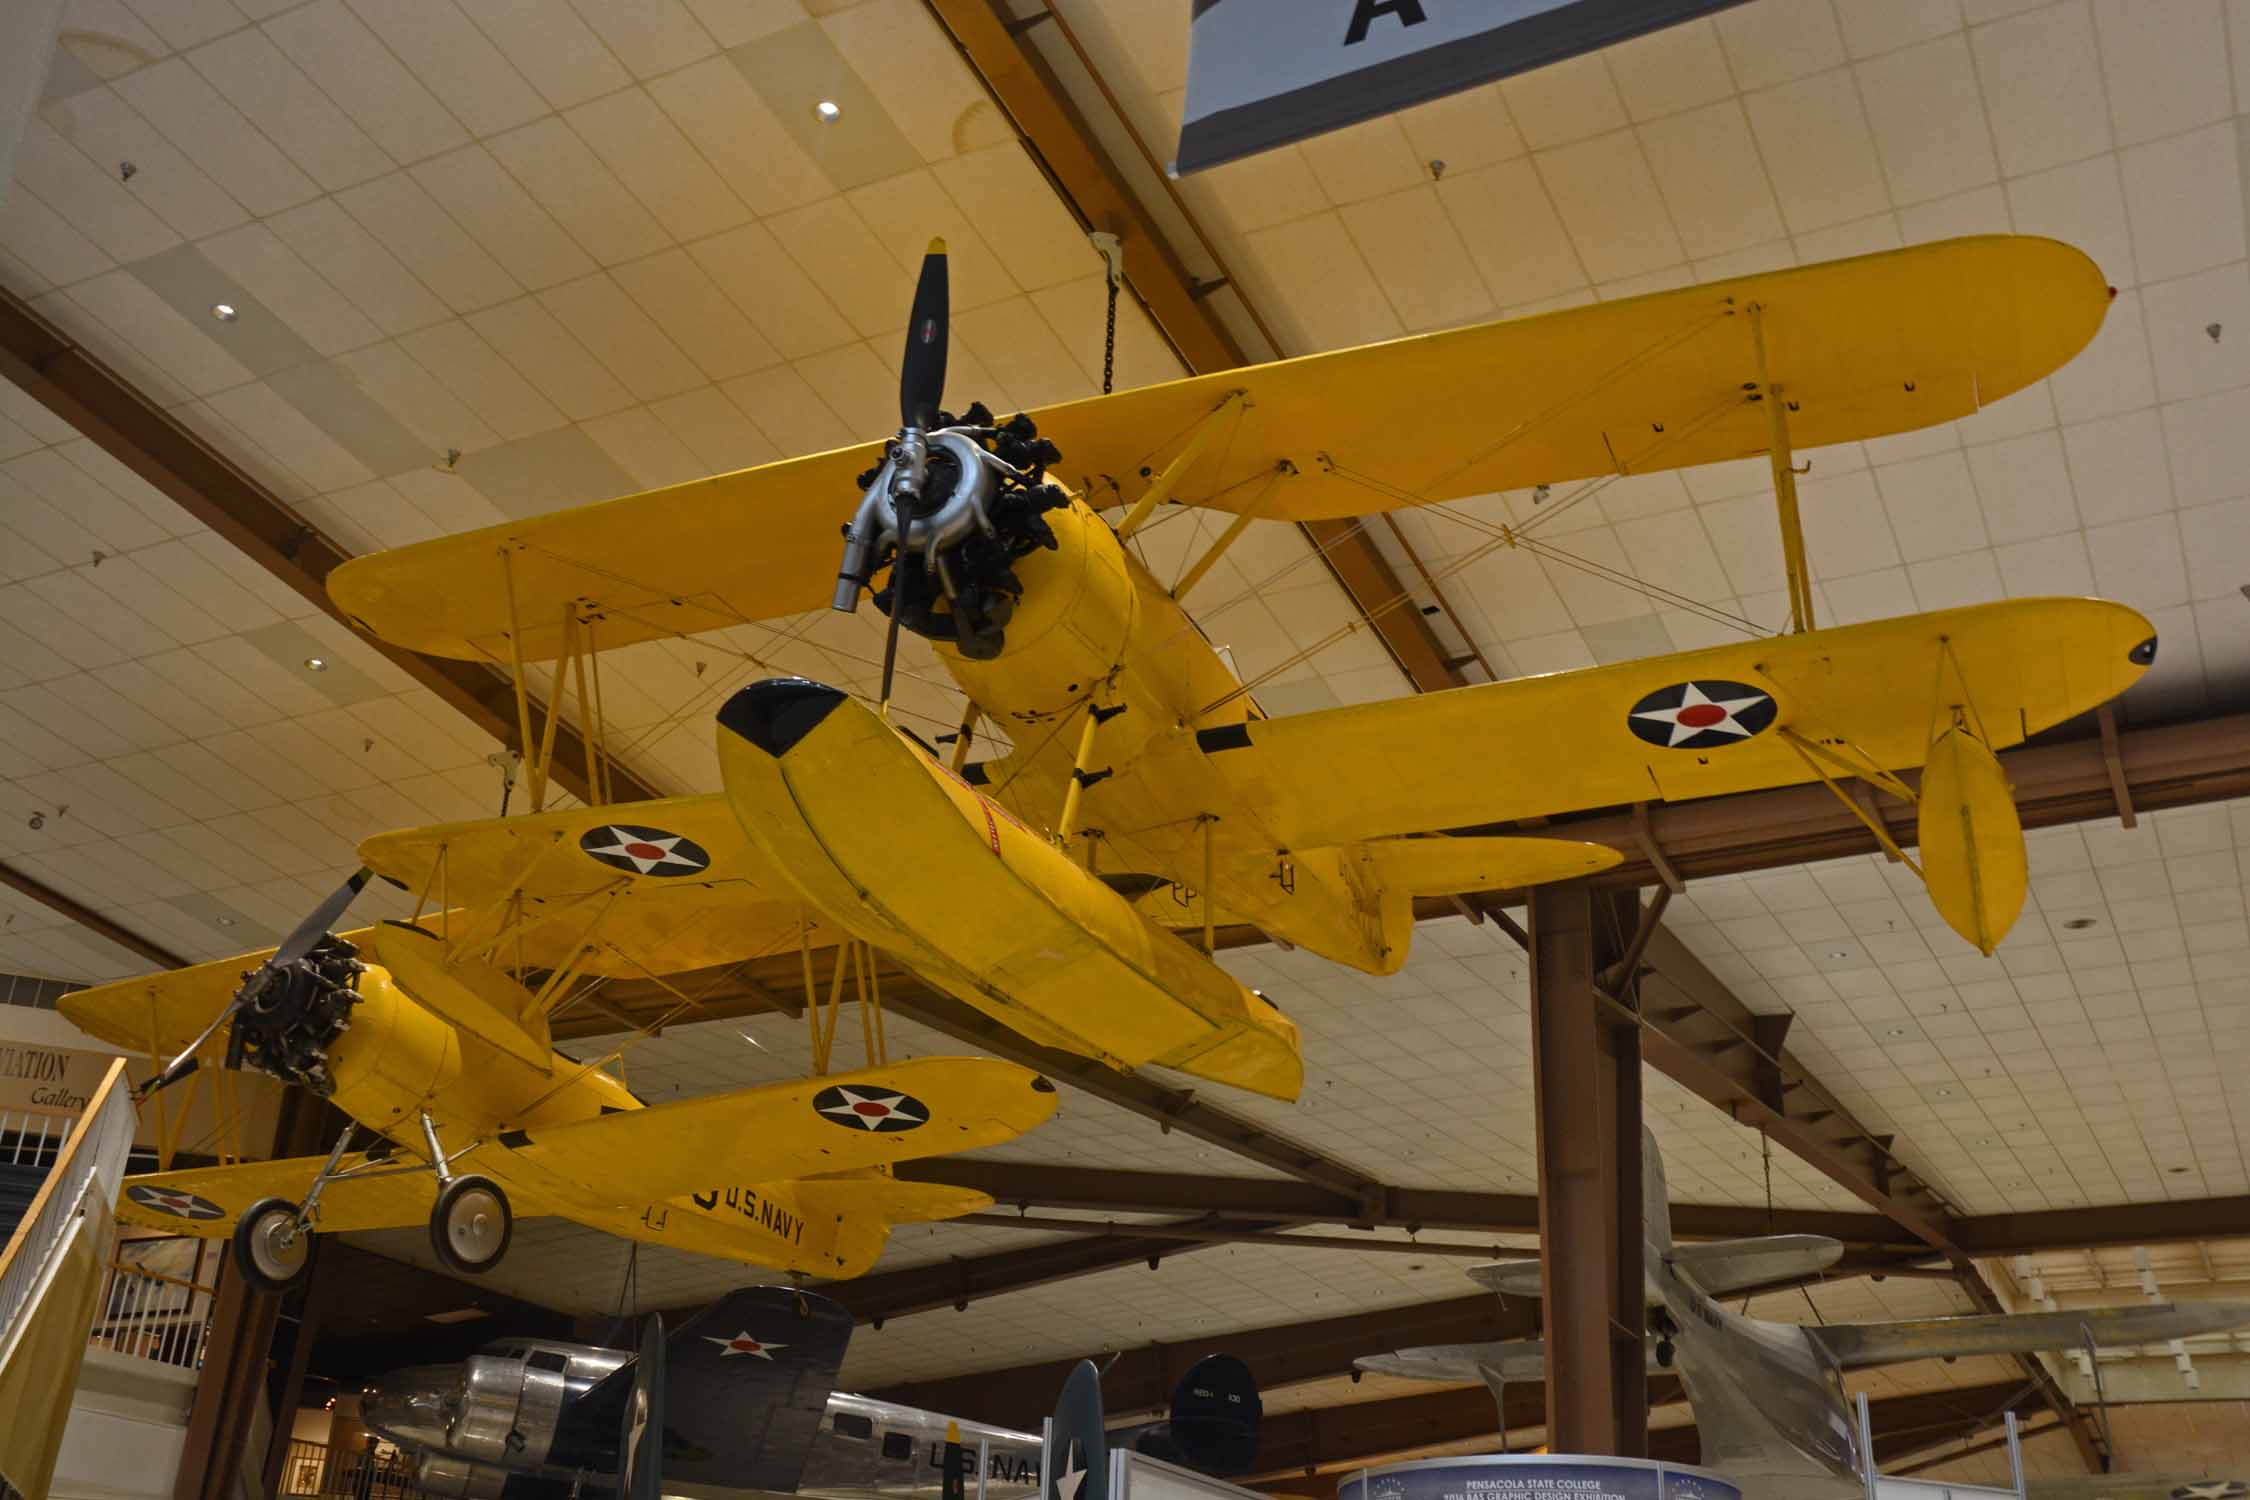 Ok, so what is a visit to Pensacola without a stop at the National Navy Aviation Museum